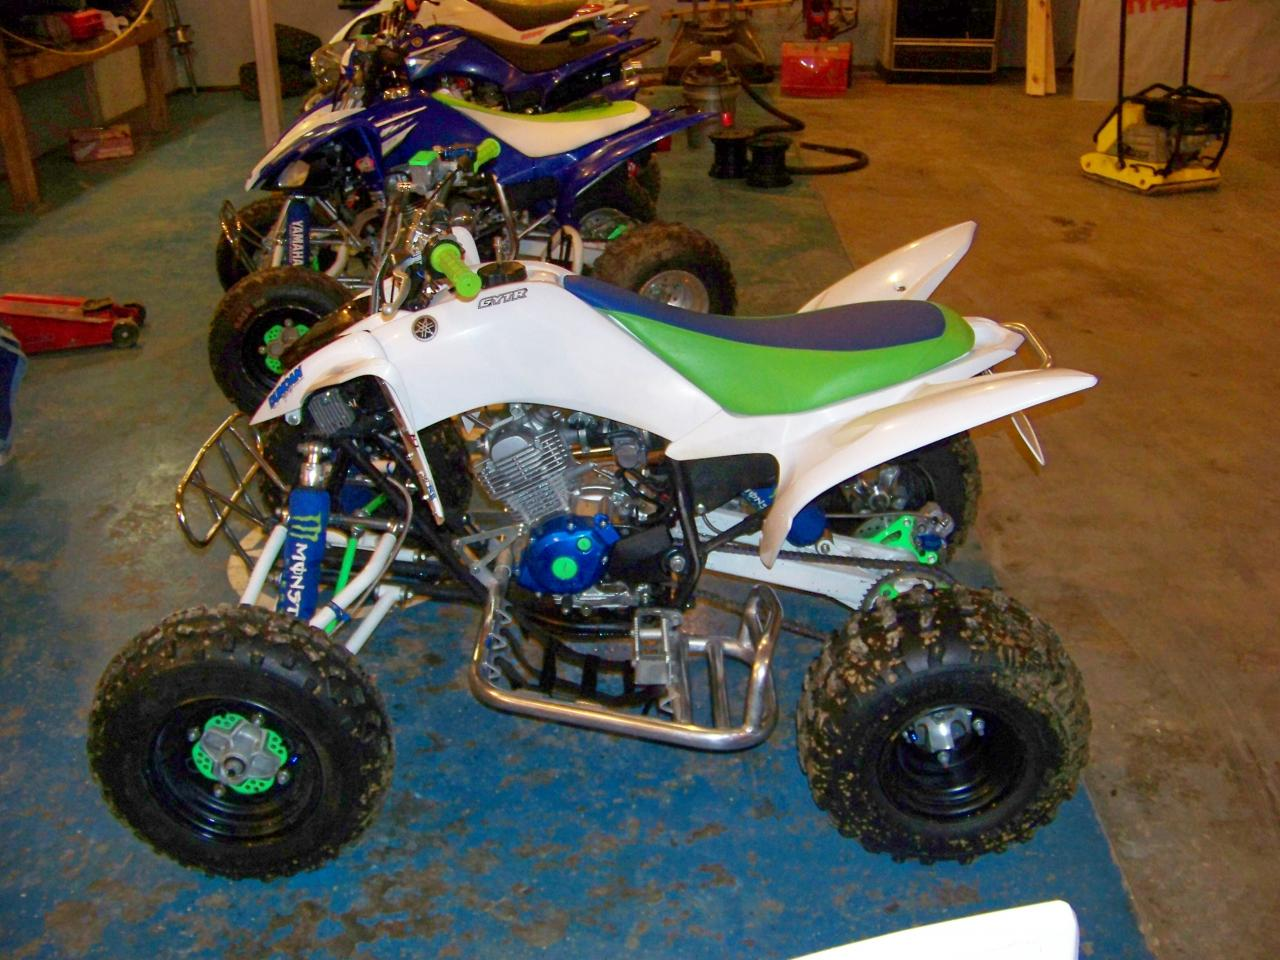 pics of raptor 125 race quad yamaha raptor forum. Black Bedroom Furniture Sets. Home Design Ideas